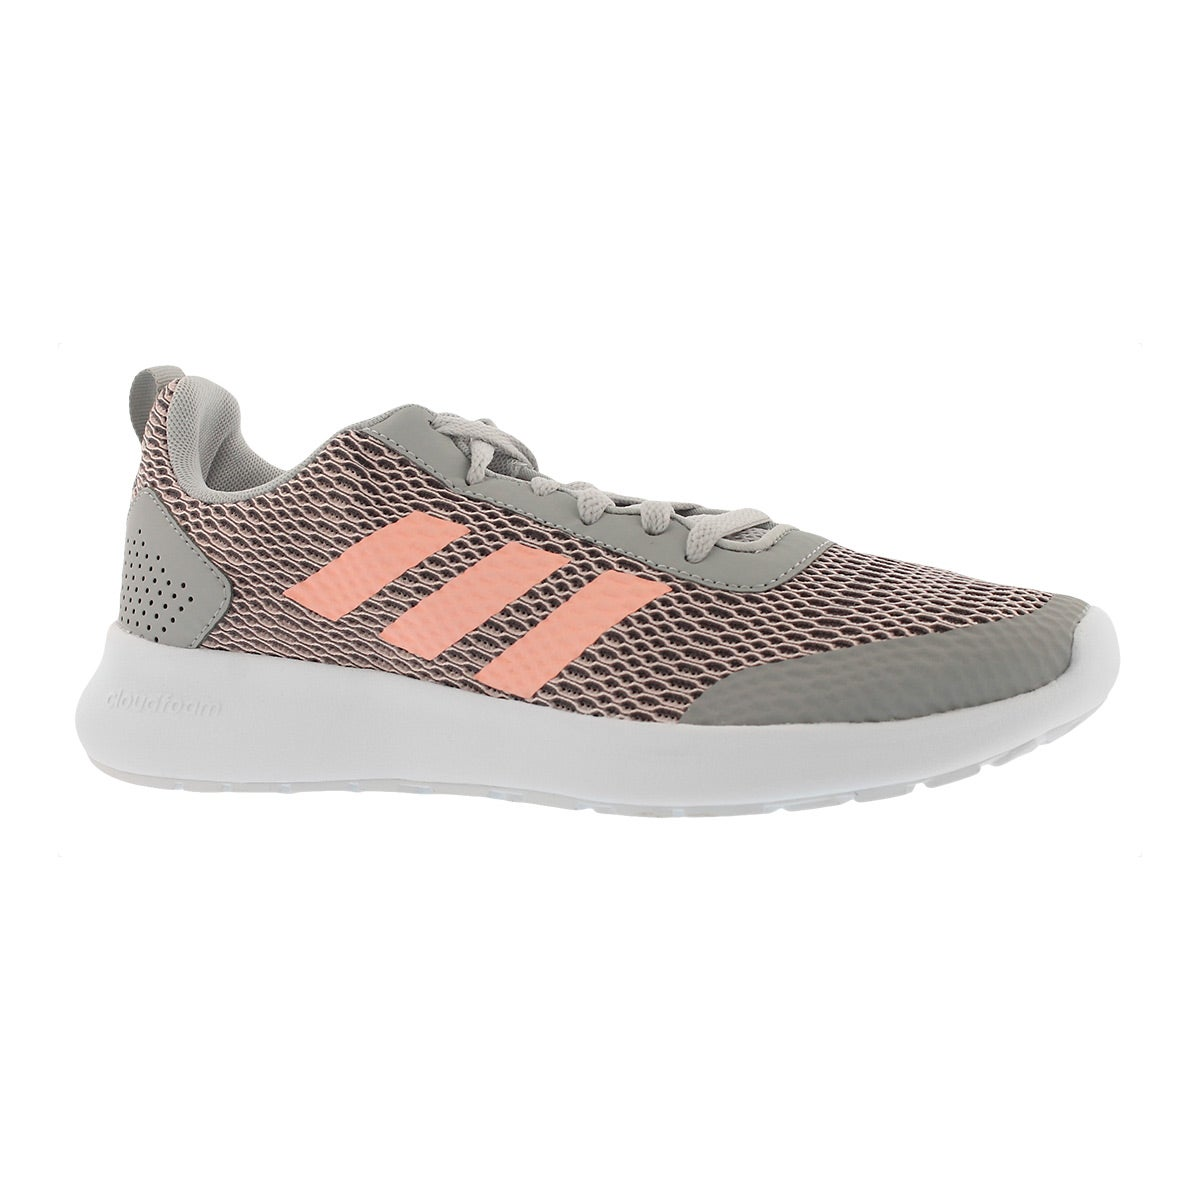 Women's CF ELEMENT RACE grey/coral running shoes